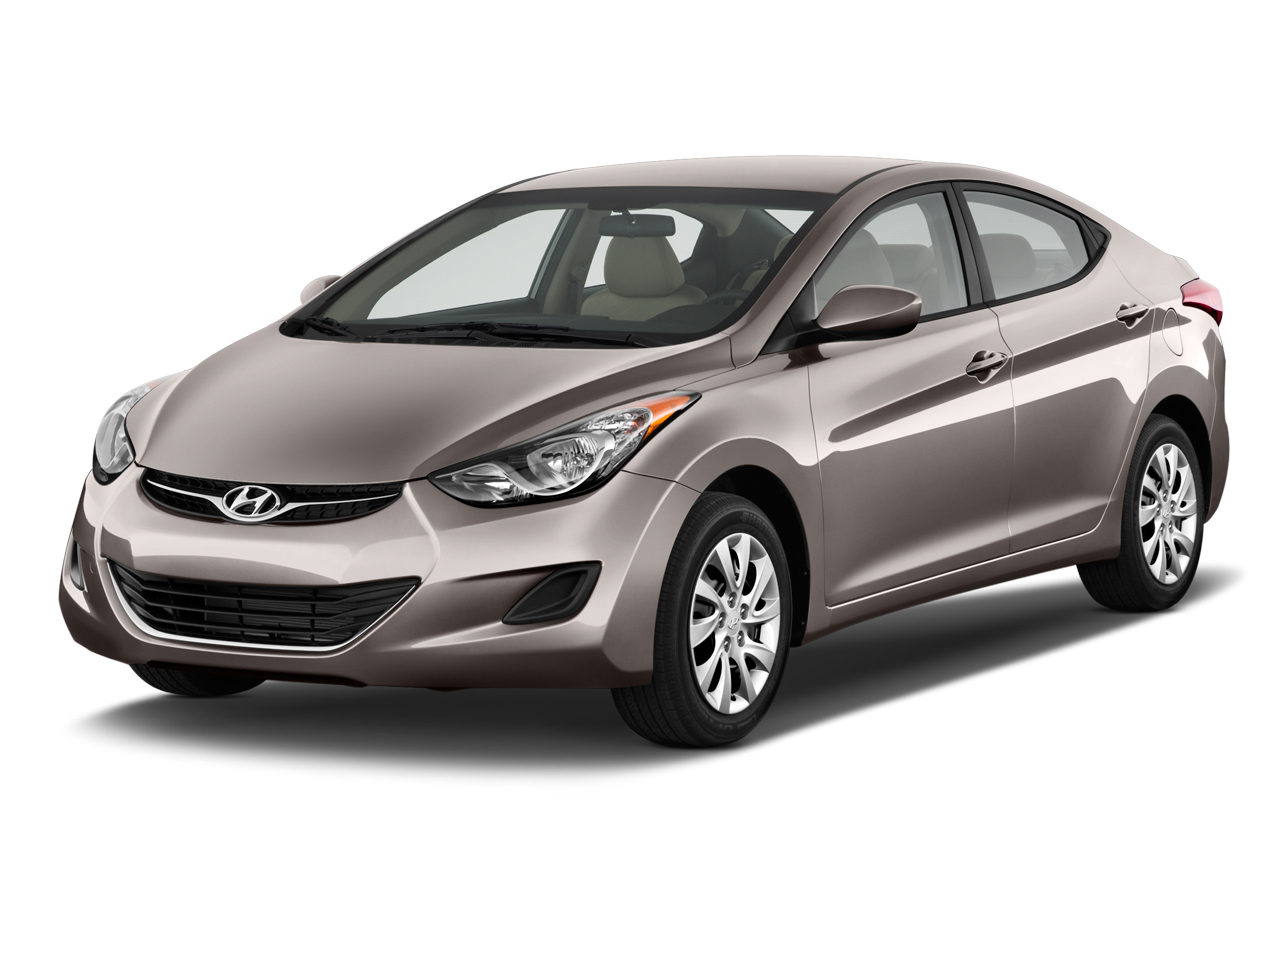 2012 Hyundai Elantra 4 Door Sedan Auto Gls Alabama Plant